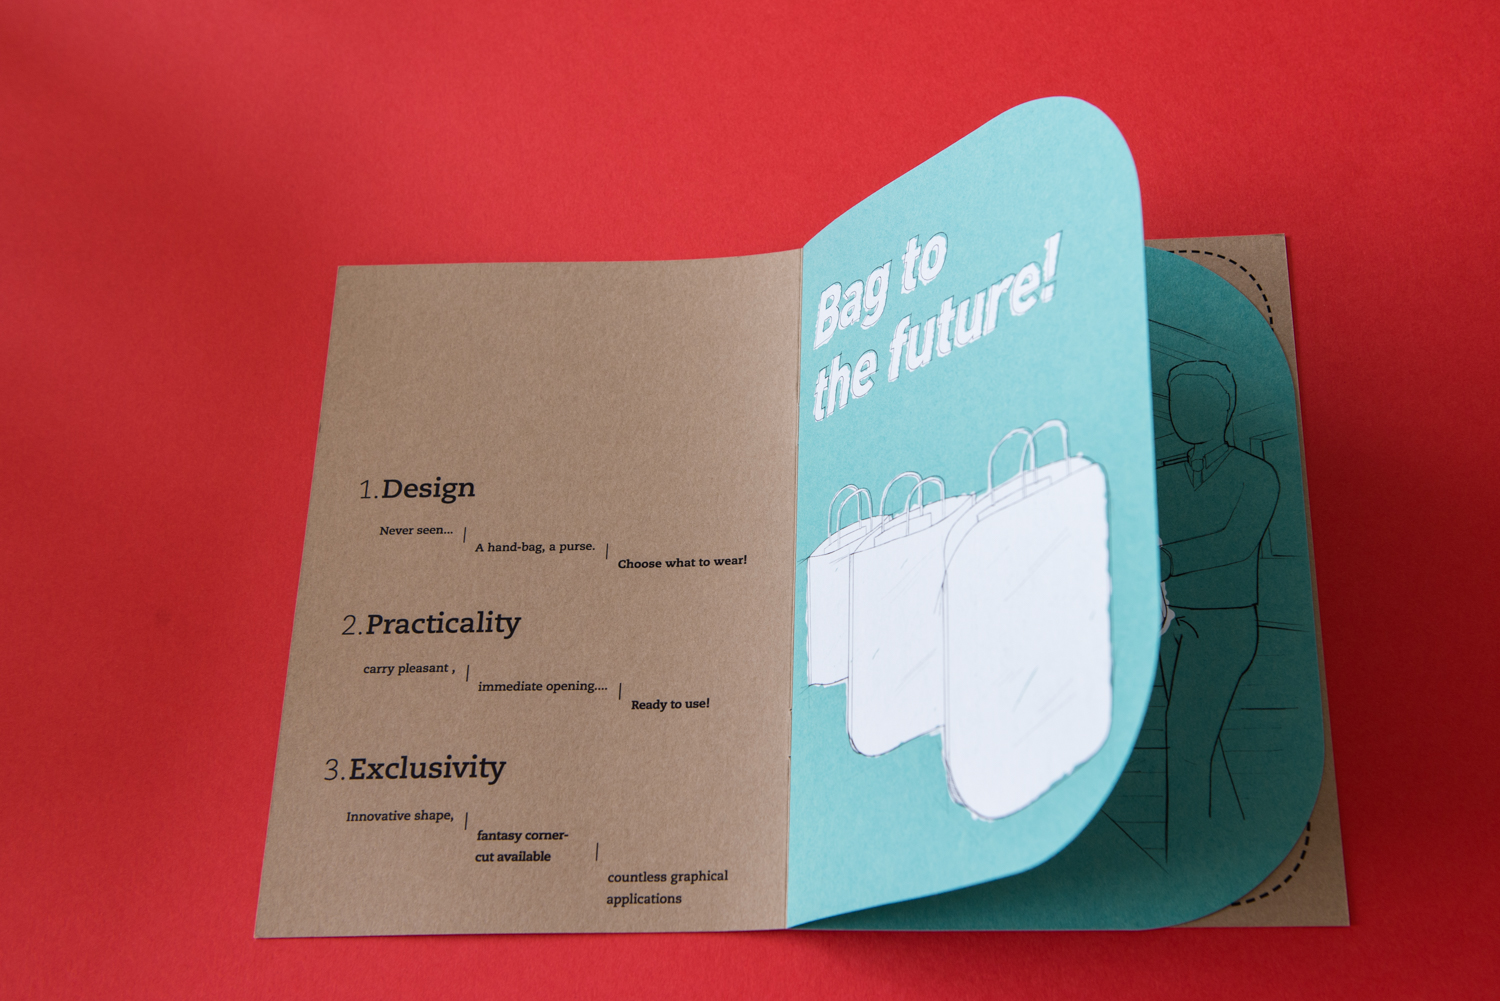 Brochure Cut It Out - Bag to the future!